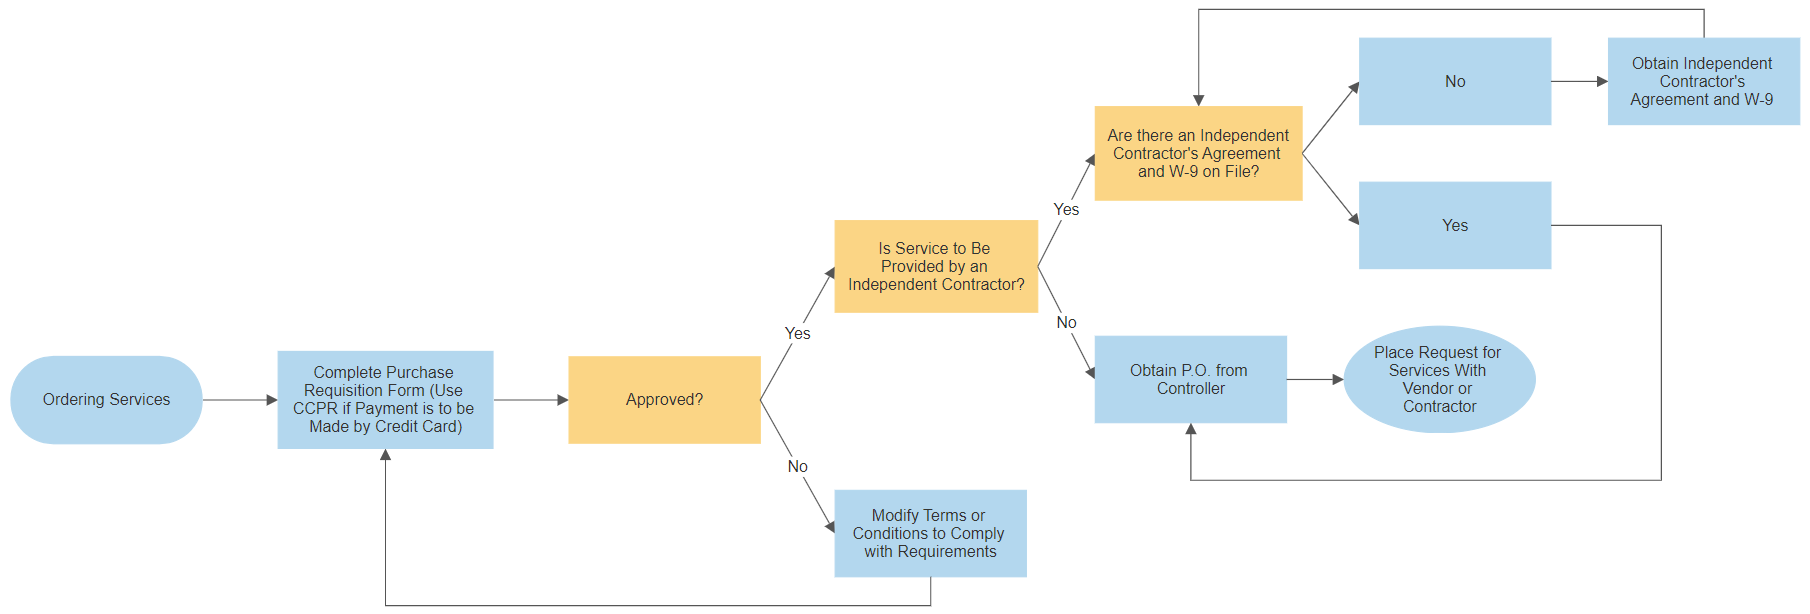 Ordering Services Process Flowchart